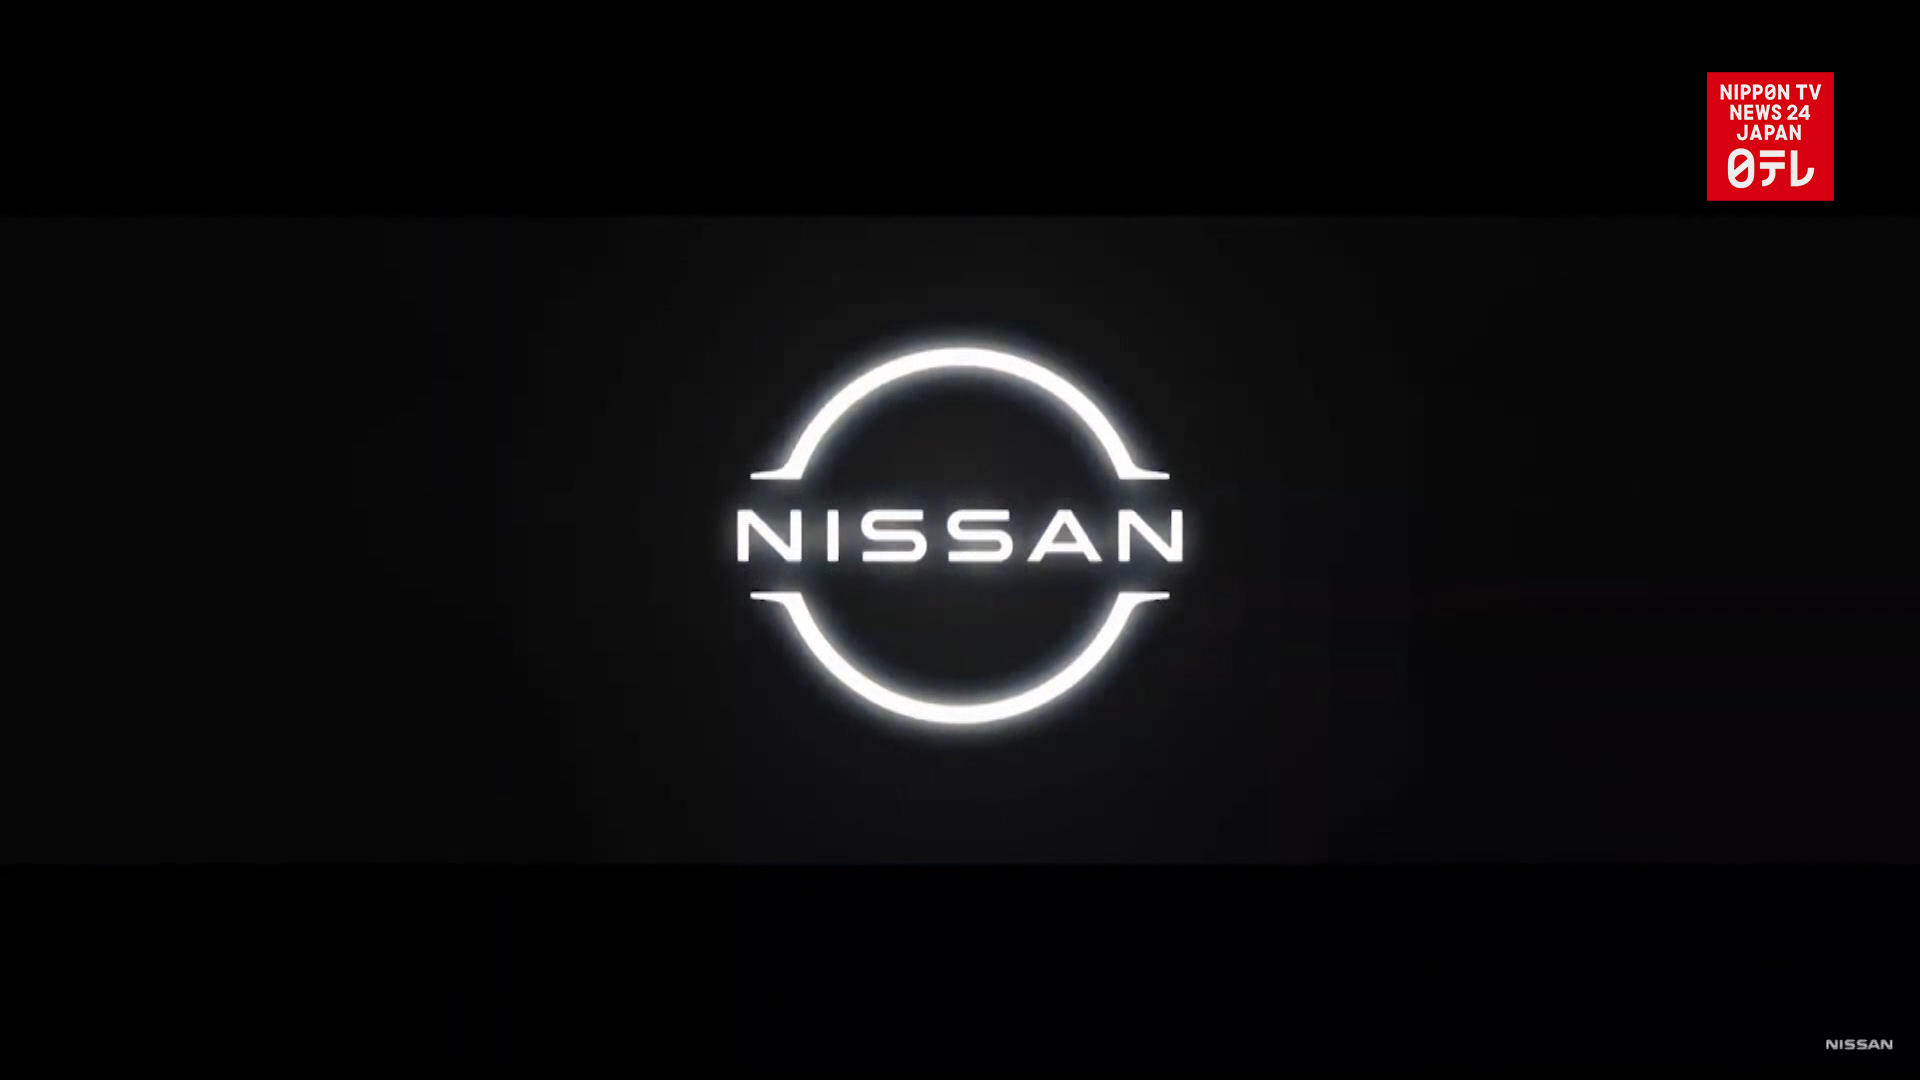 Nissan attempts to reinvent brand in new era